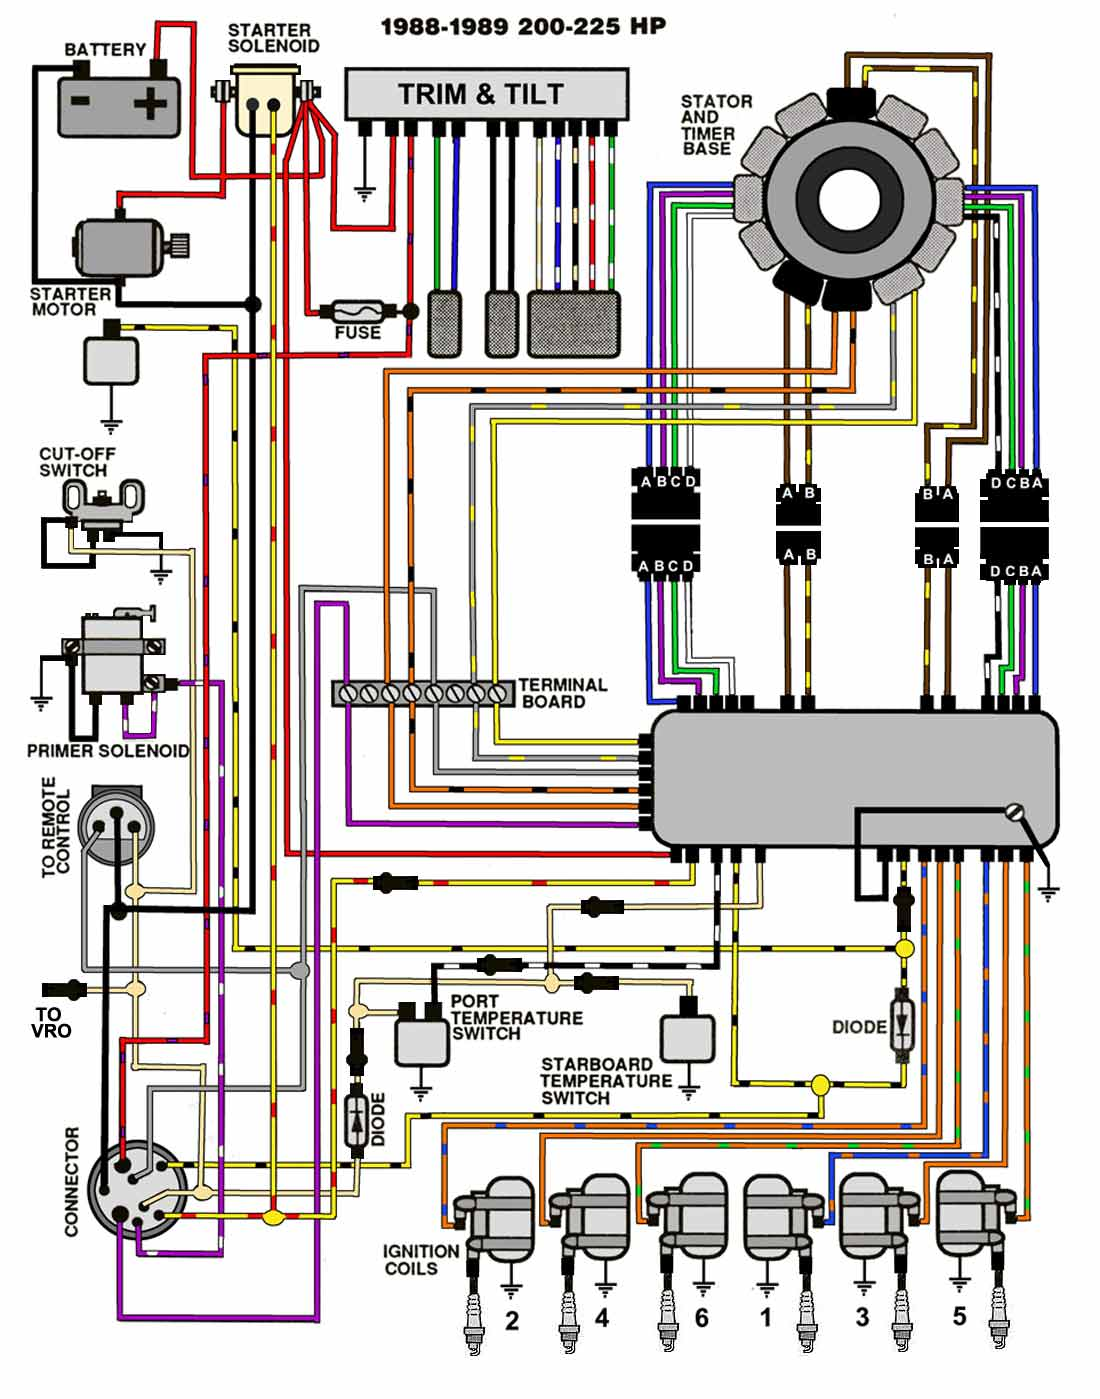 1988_89_200_225 mastertech marine evinrude johnson outboard wiring diagrams wiring diagram johnson 50 hp outboard at gsmportal.co